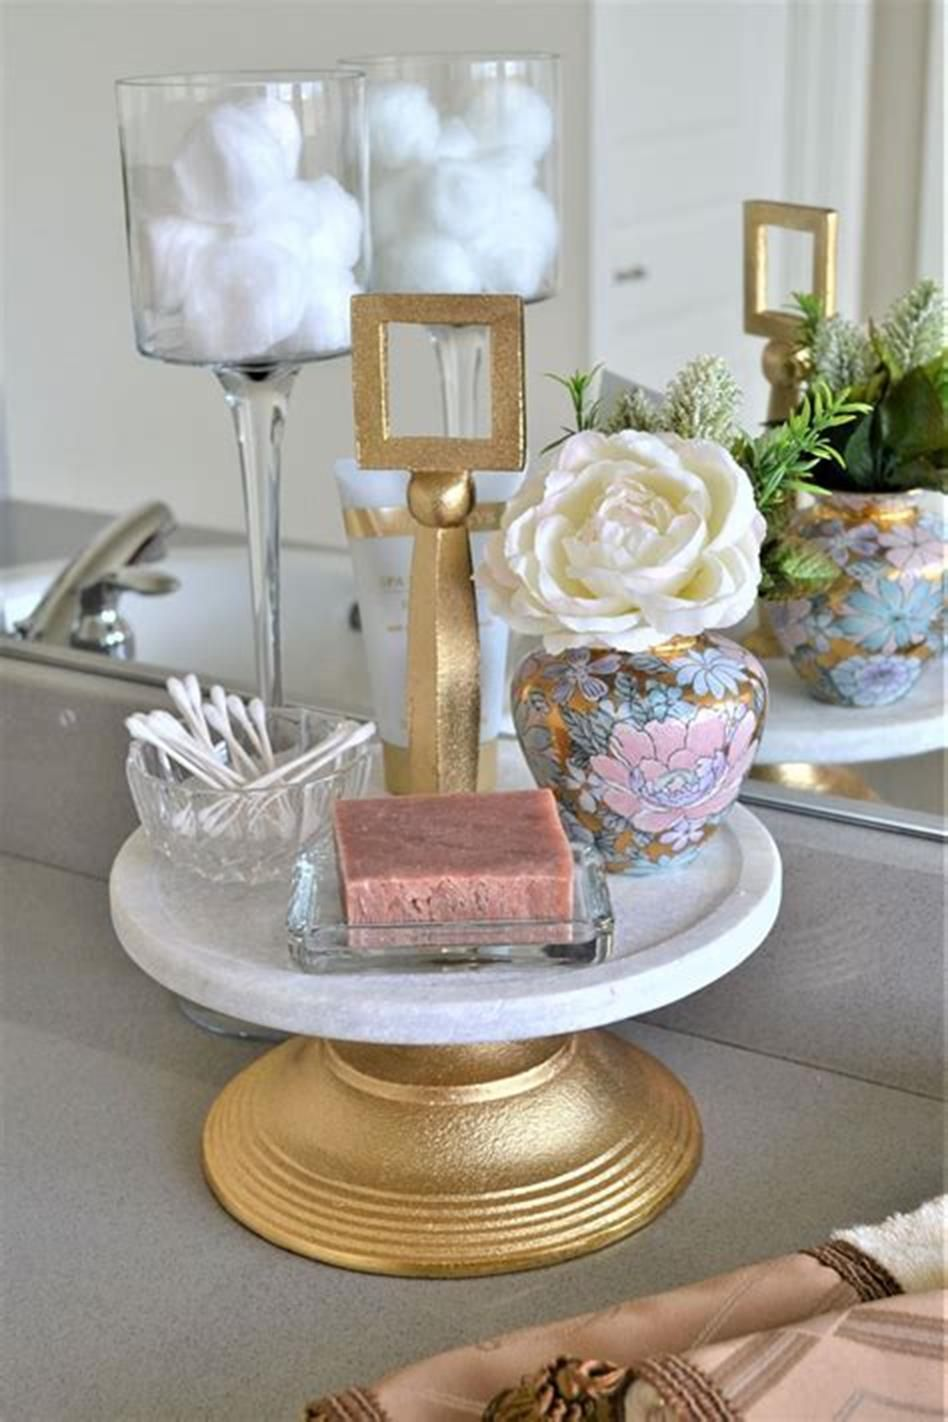 40 Beautiful Bathroom Vanity Tray Decor Ideas (With images ...